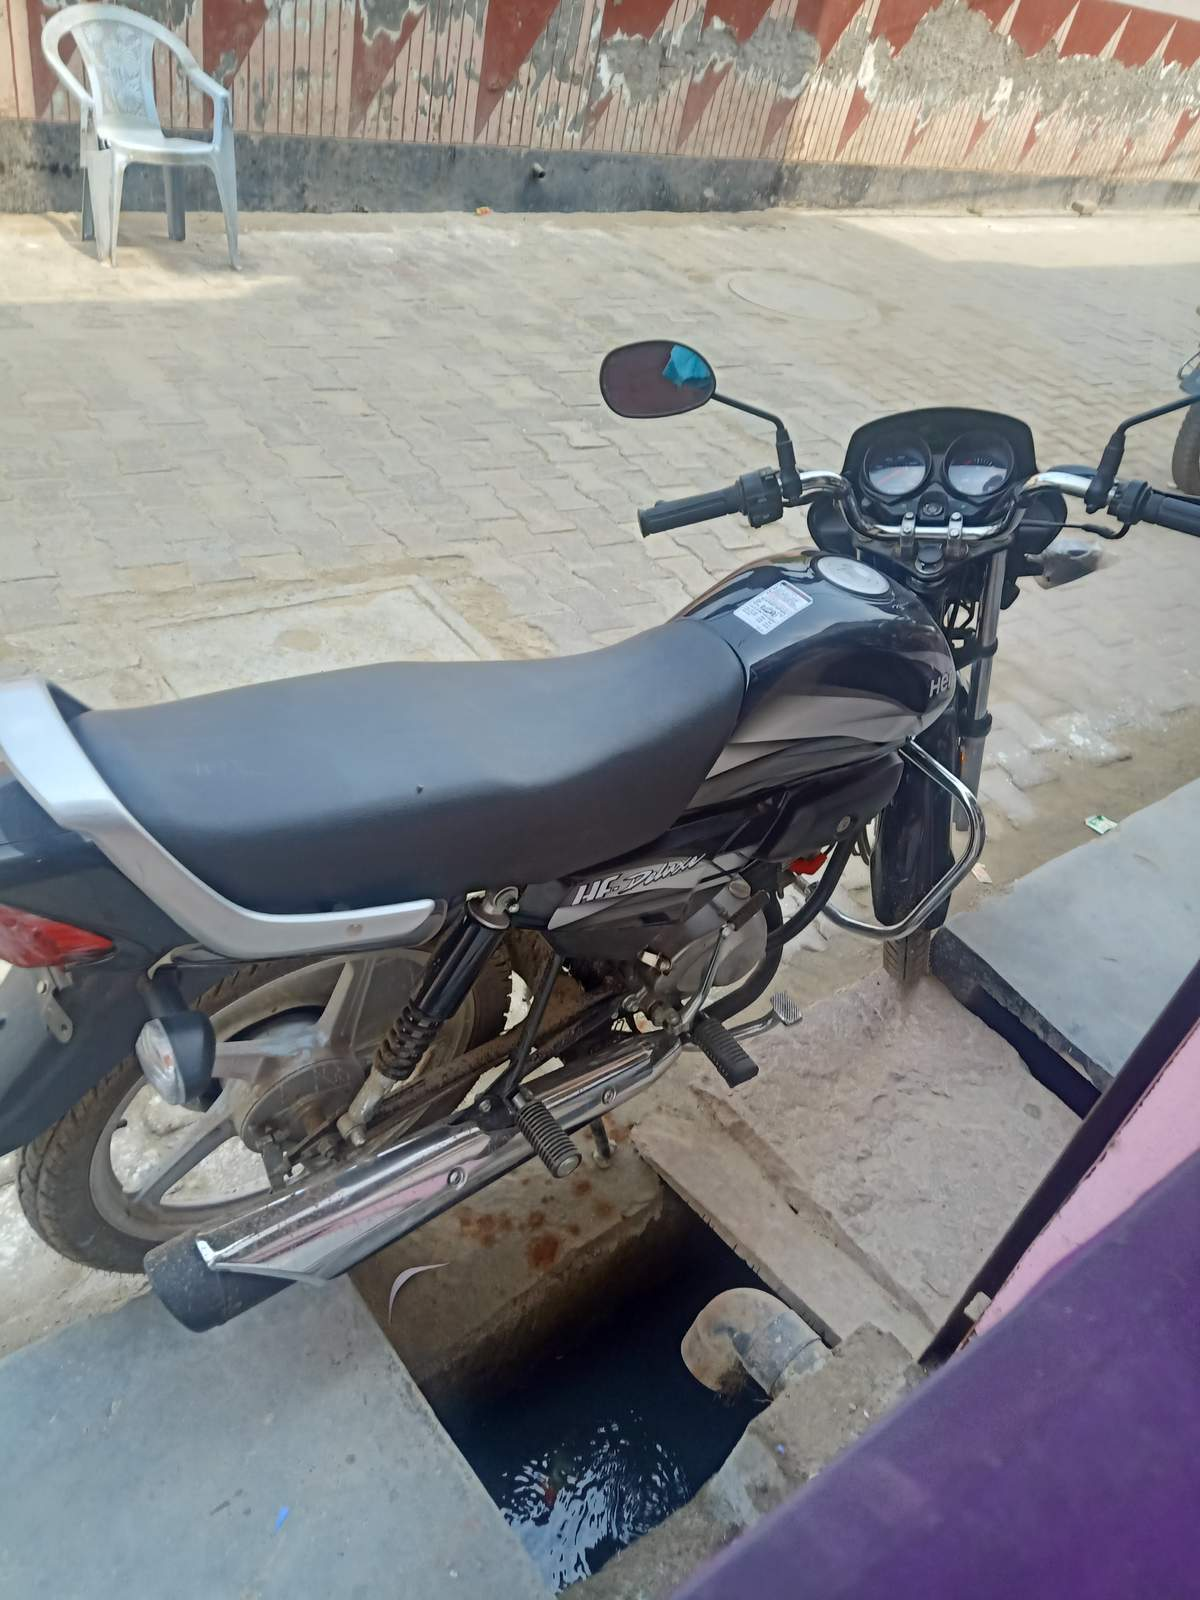 Used Hero Hf Deluxe Bike In Bulandshahr 2020 Model India At Best Price Id 51250